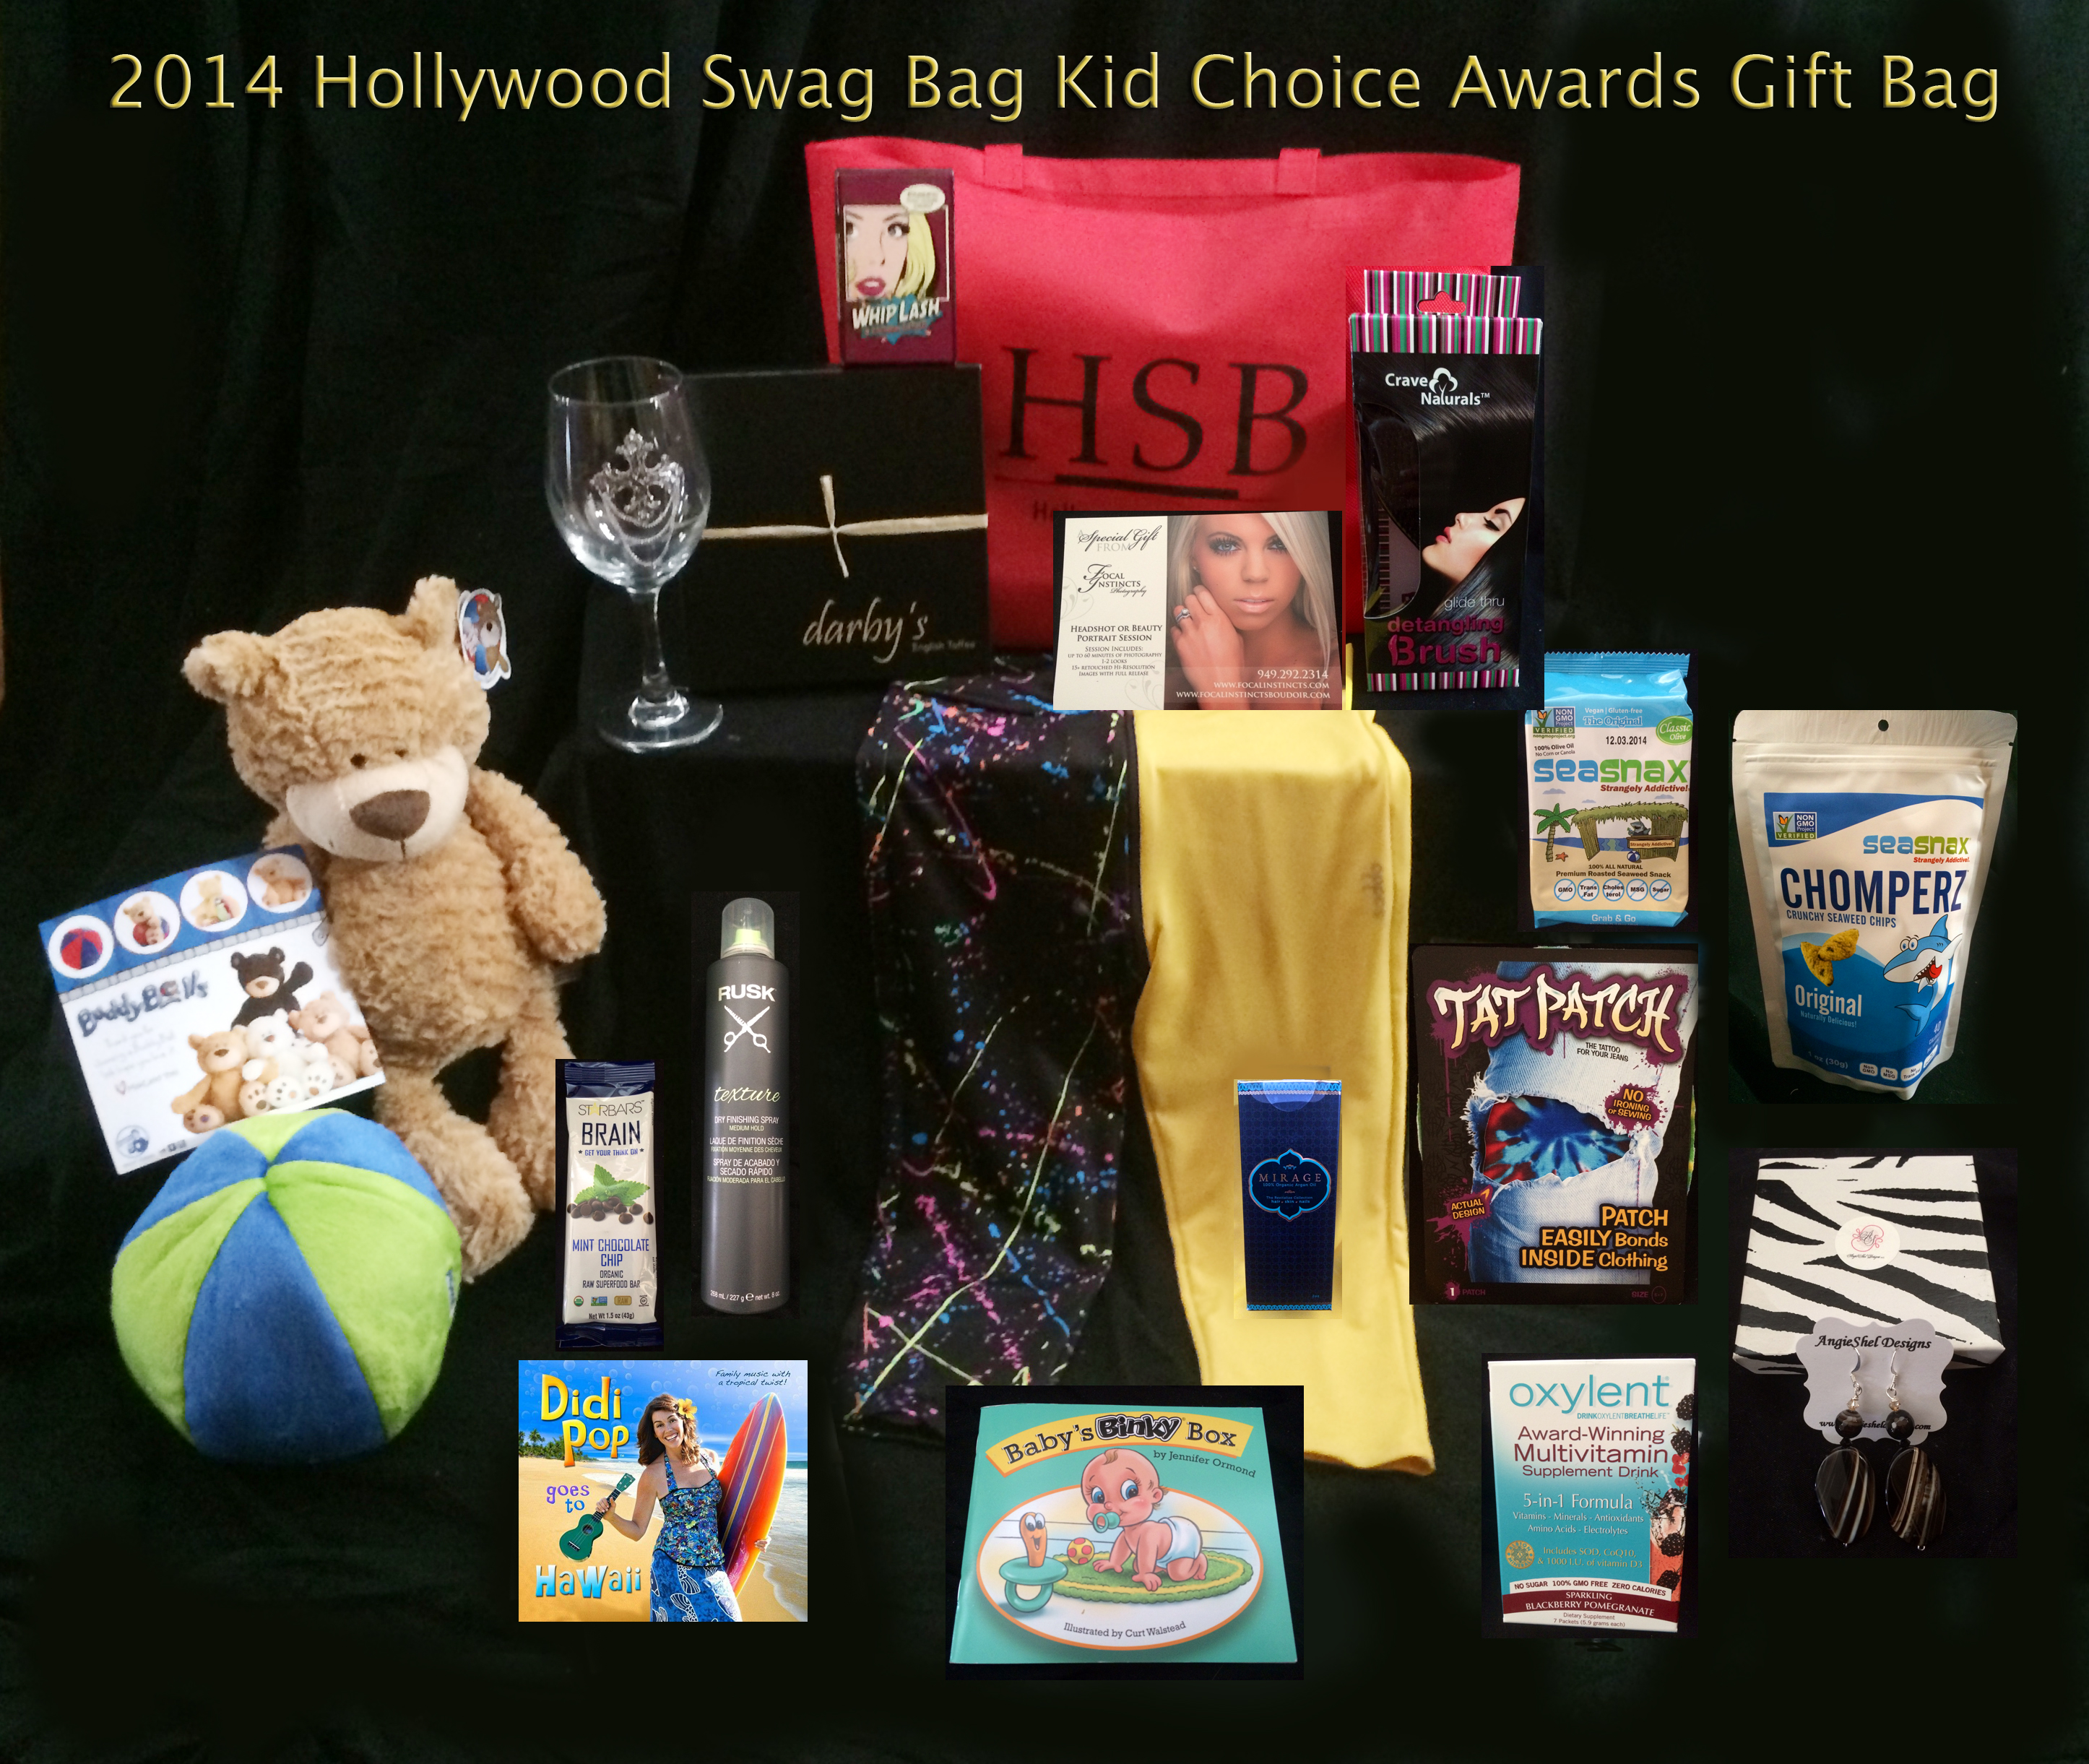 Hollywood Swag Bag Swags The Nominees for The 2014 Kids Choice ...